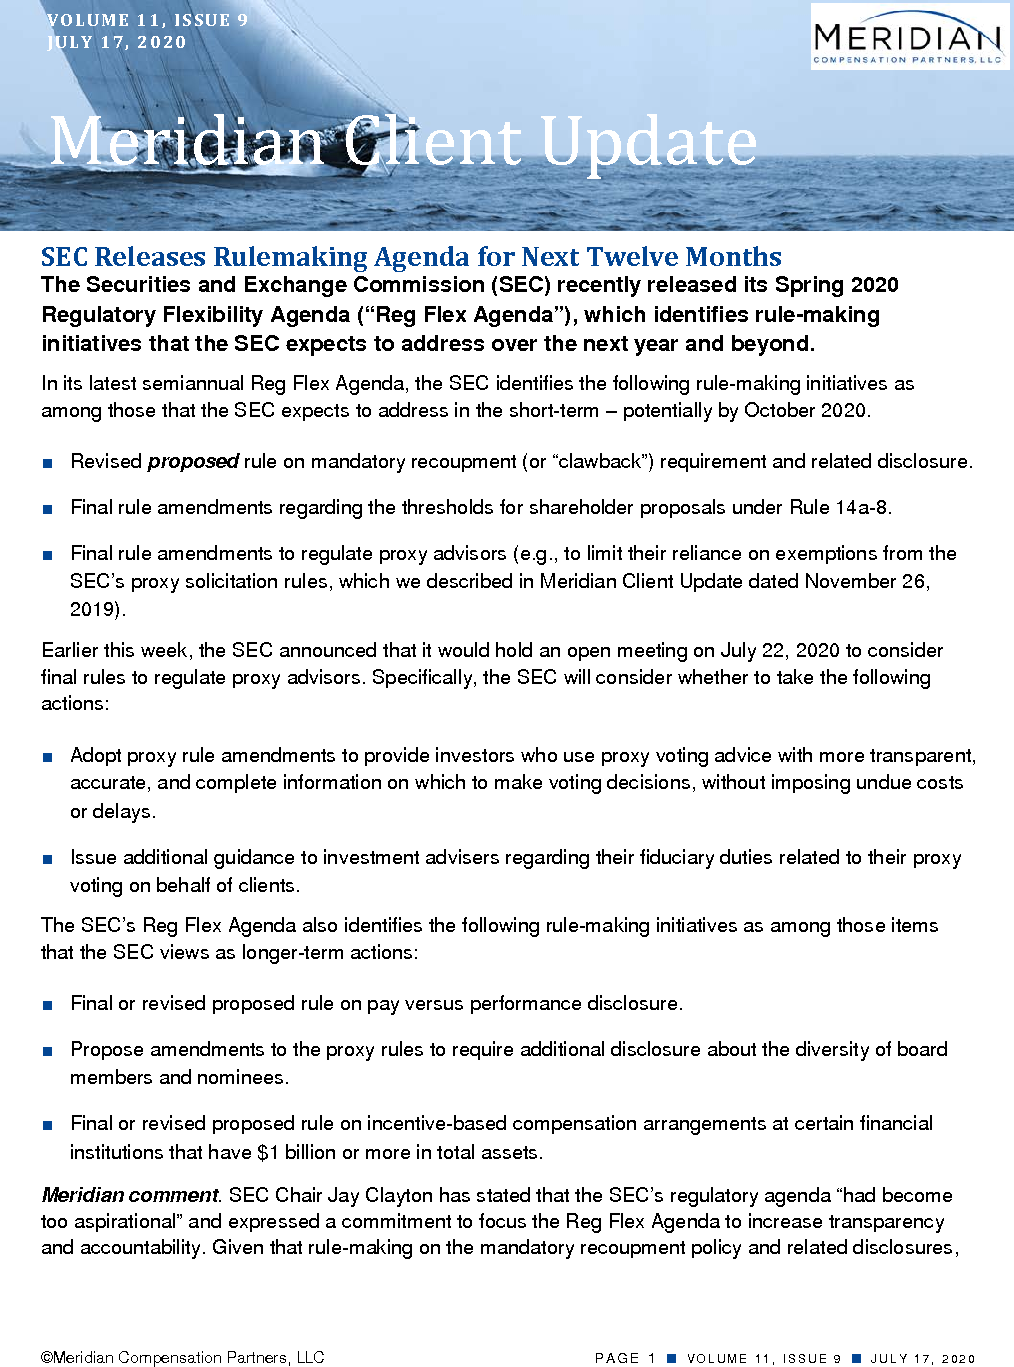 SEC Releases Rulemaking Agenda for Next Twelve Months (PDF)